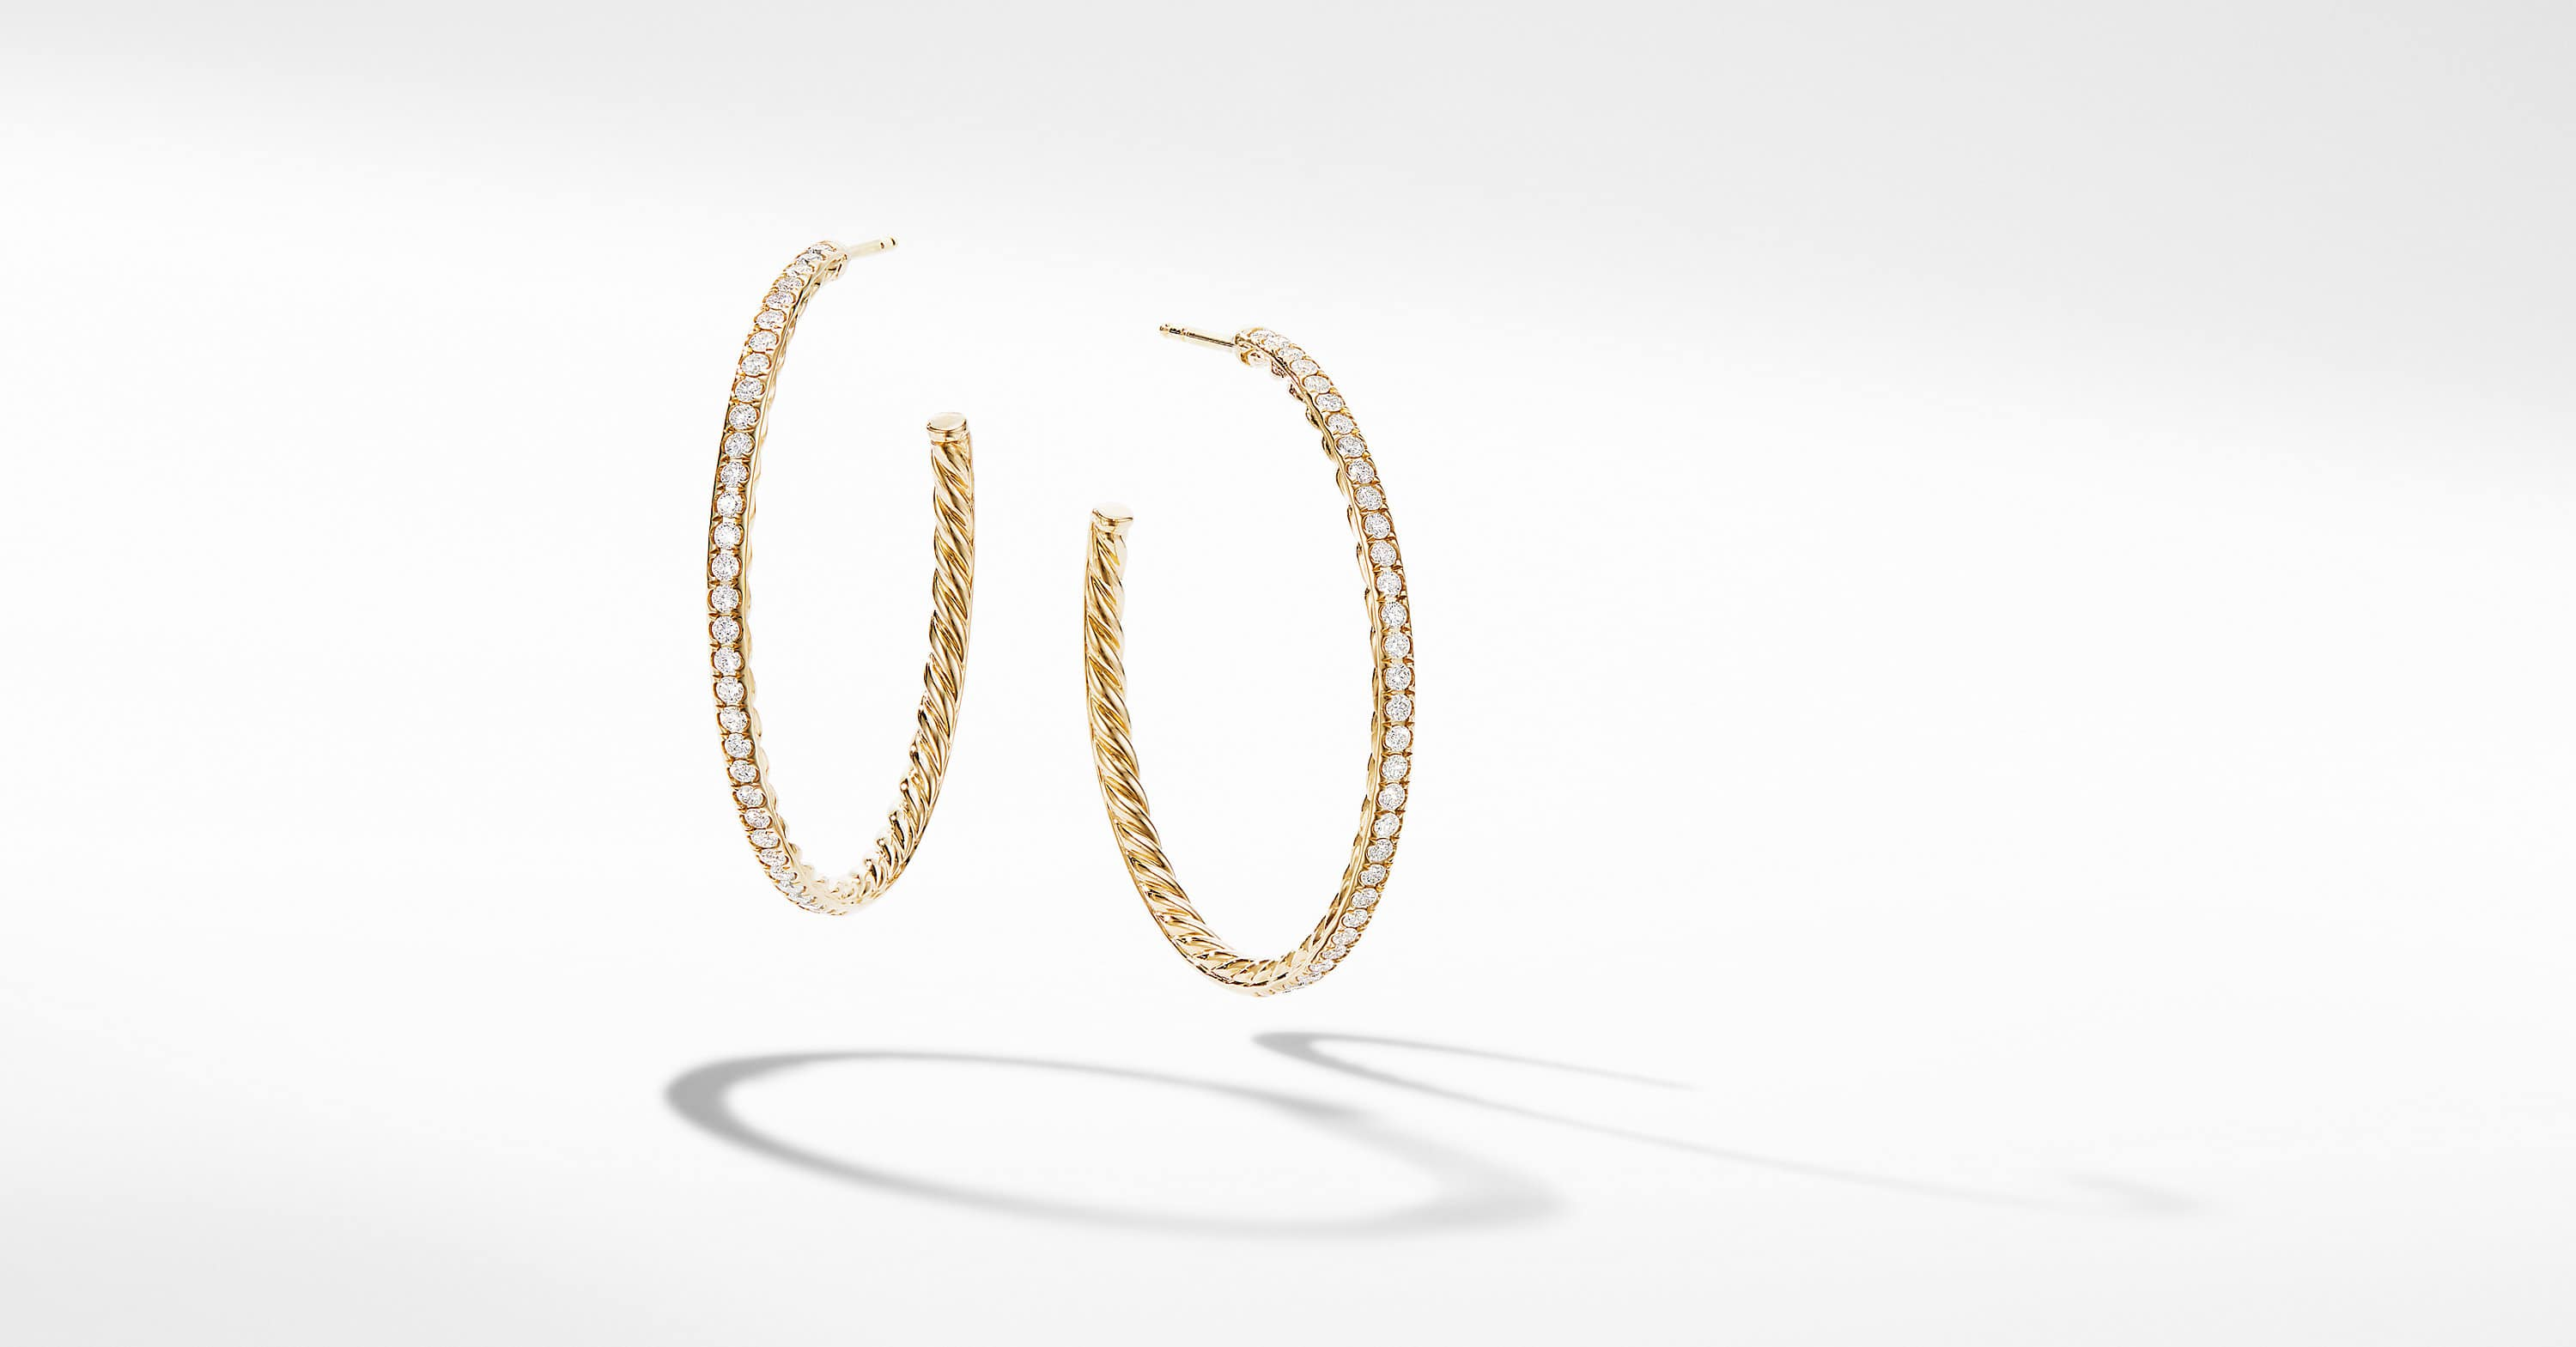 Medium Hoop Earrings in 18K Yellow Gold with Pavé